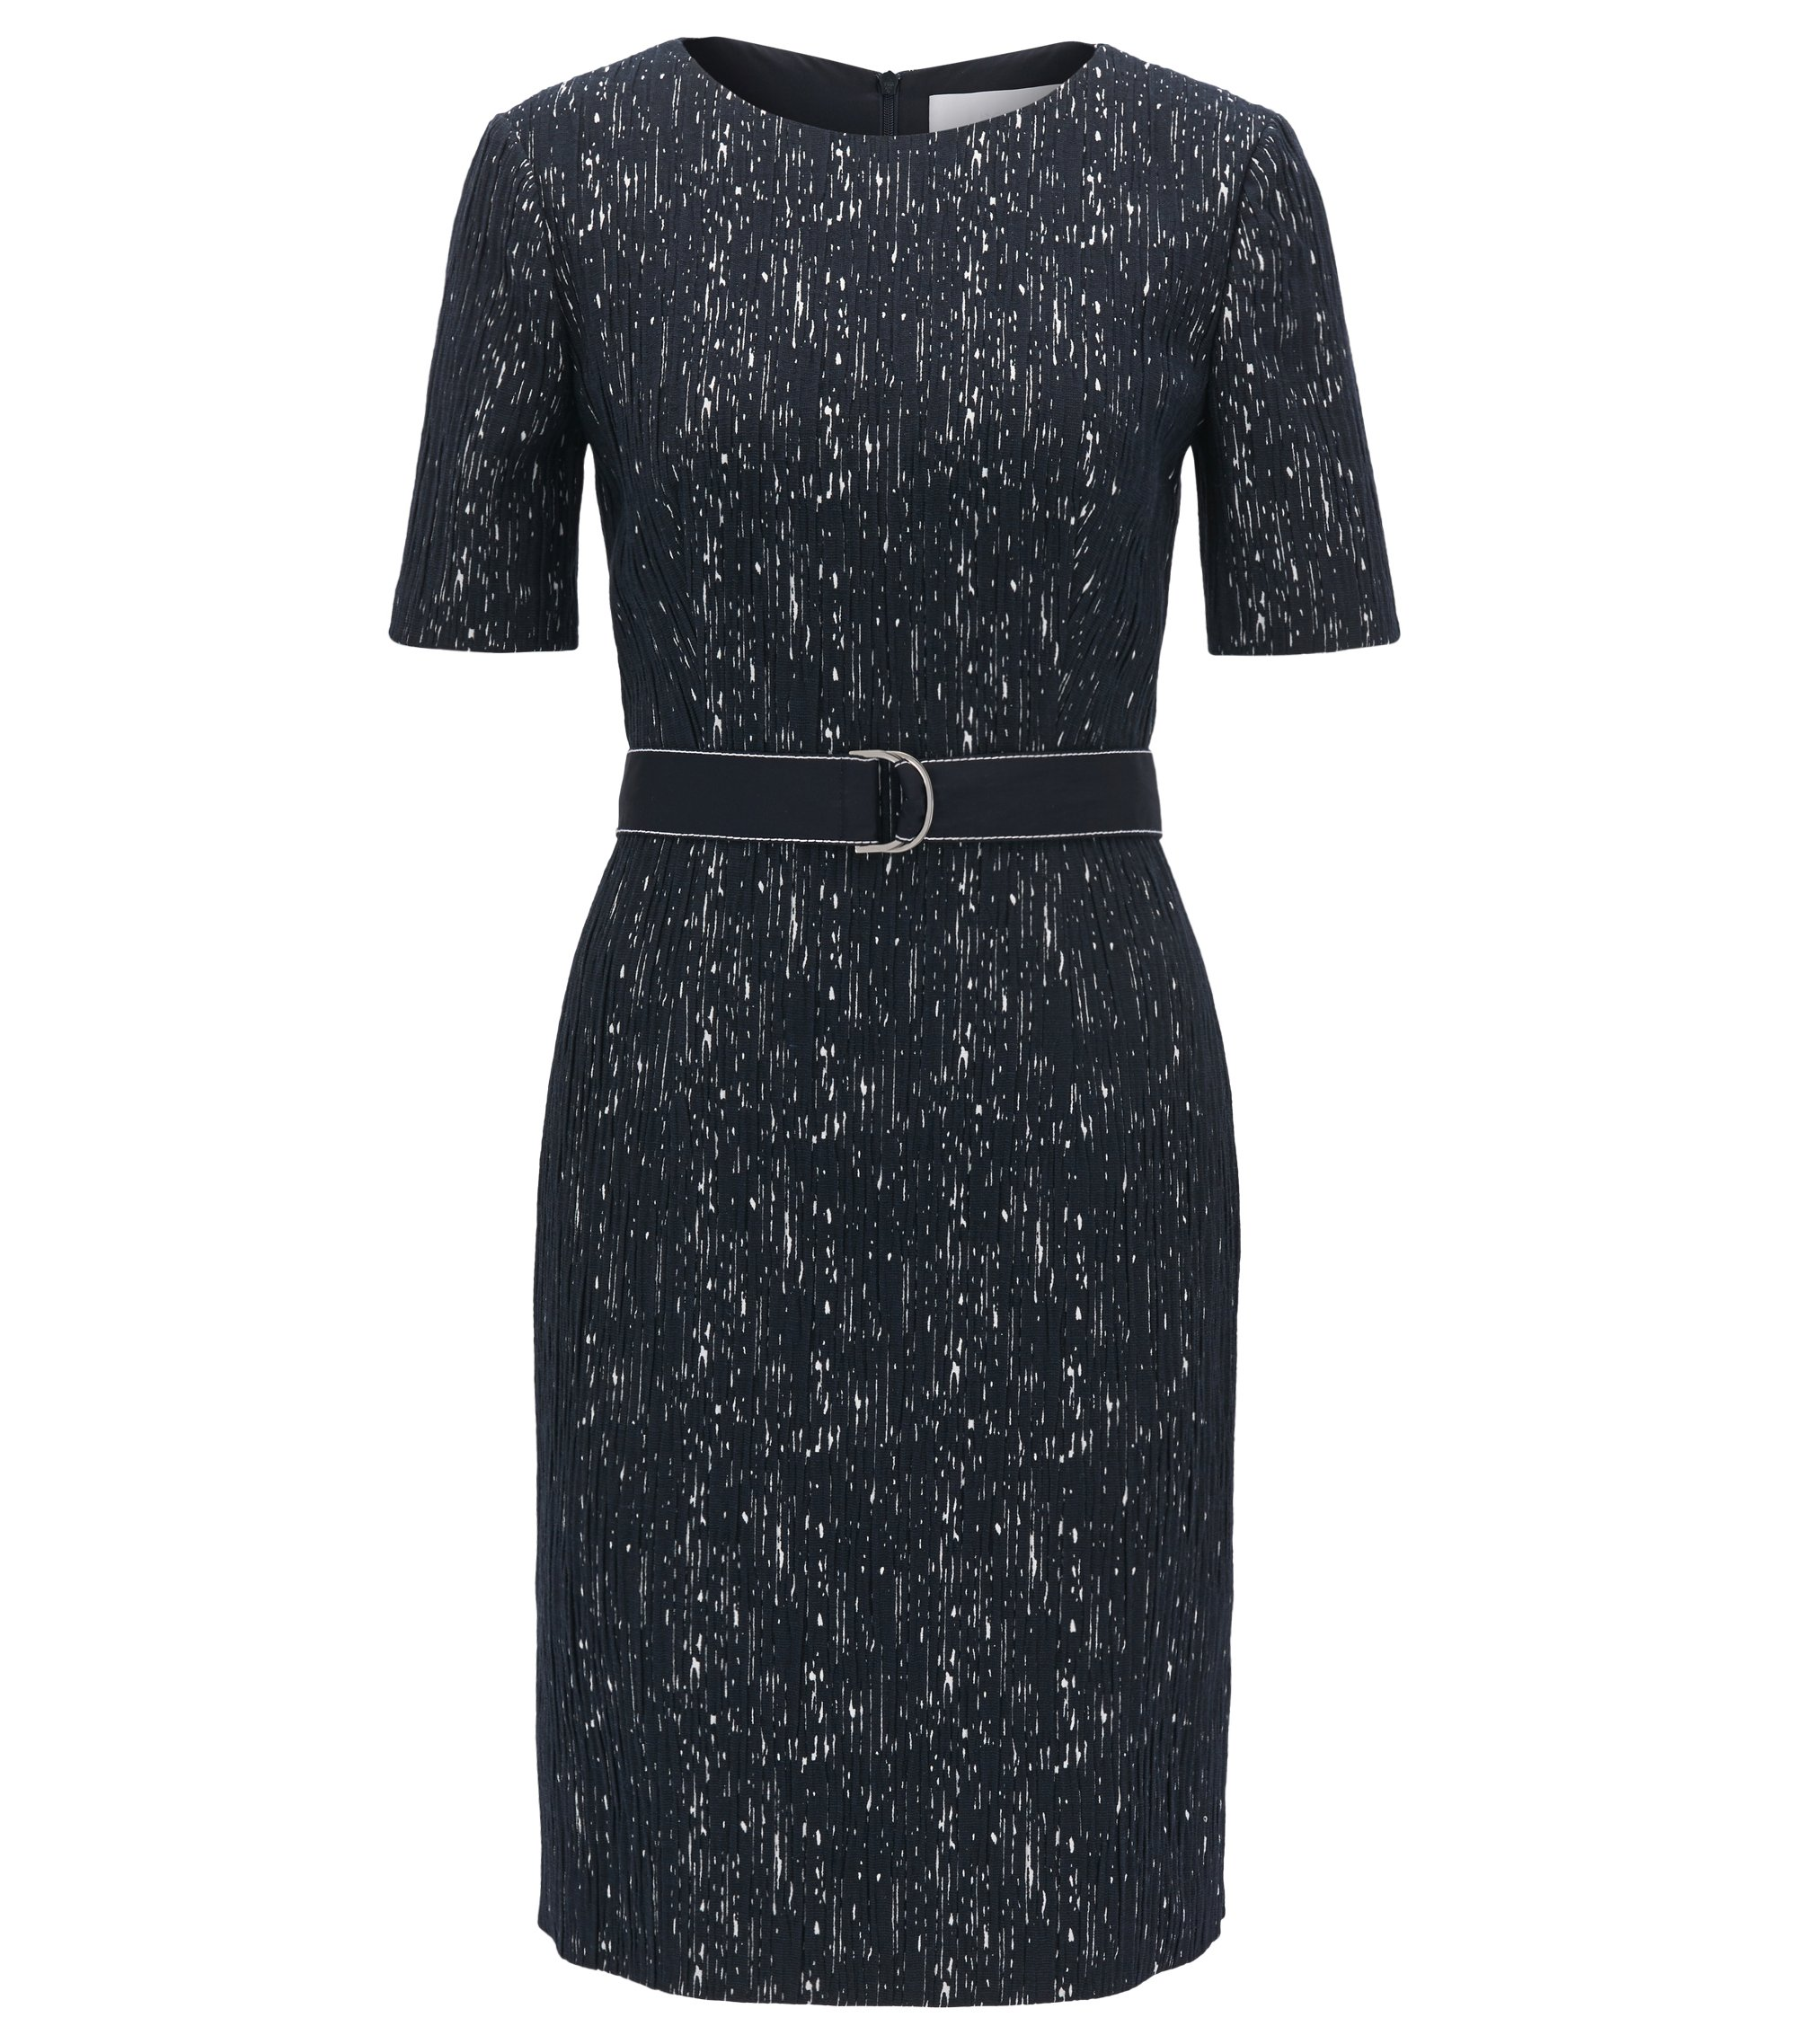 Belted shift dress in a patterned structured stretch fabric, Patterned